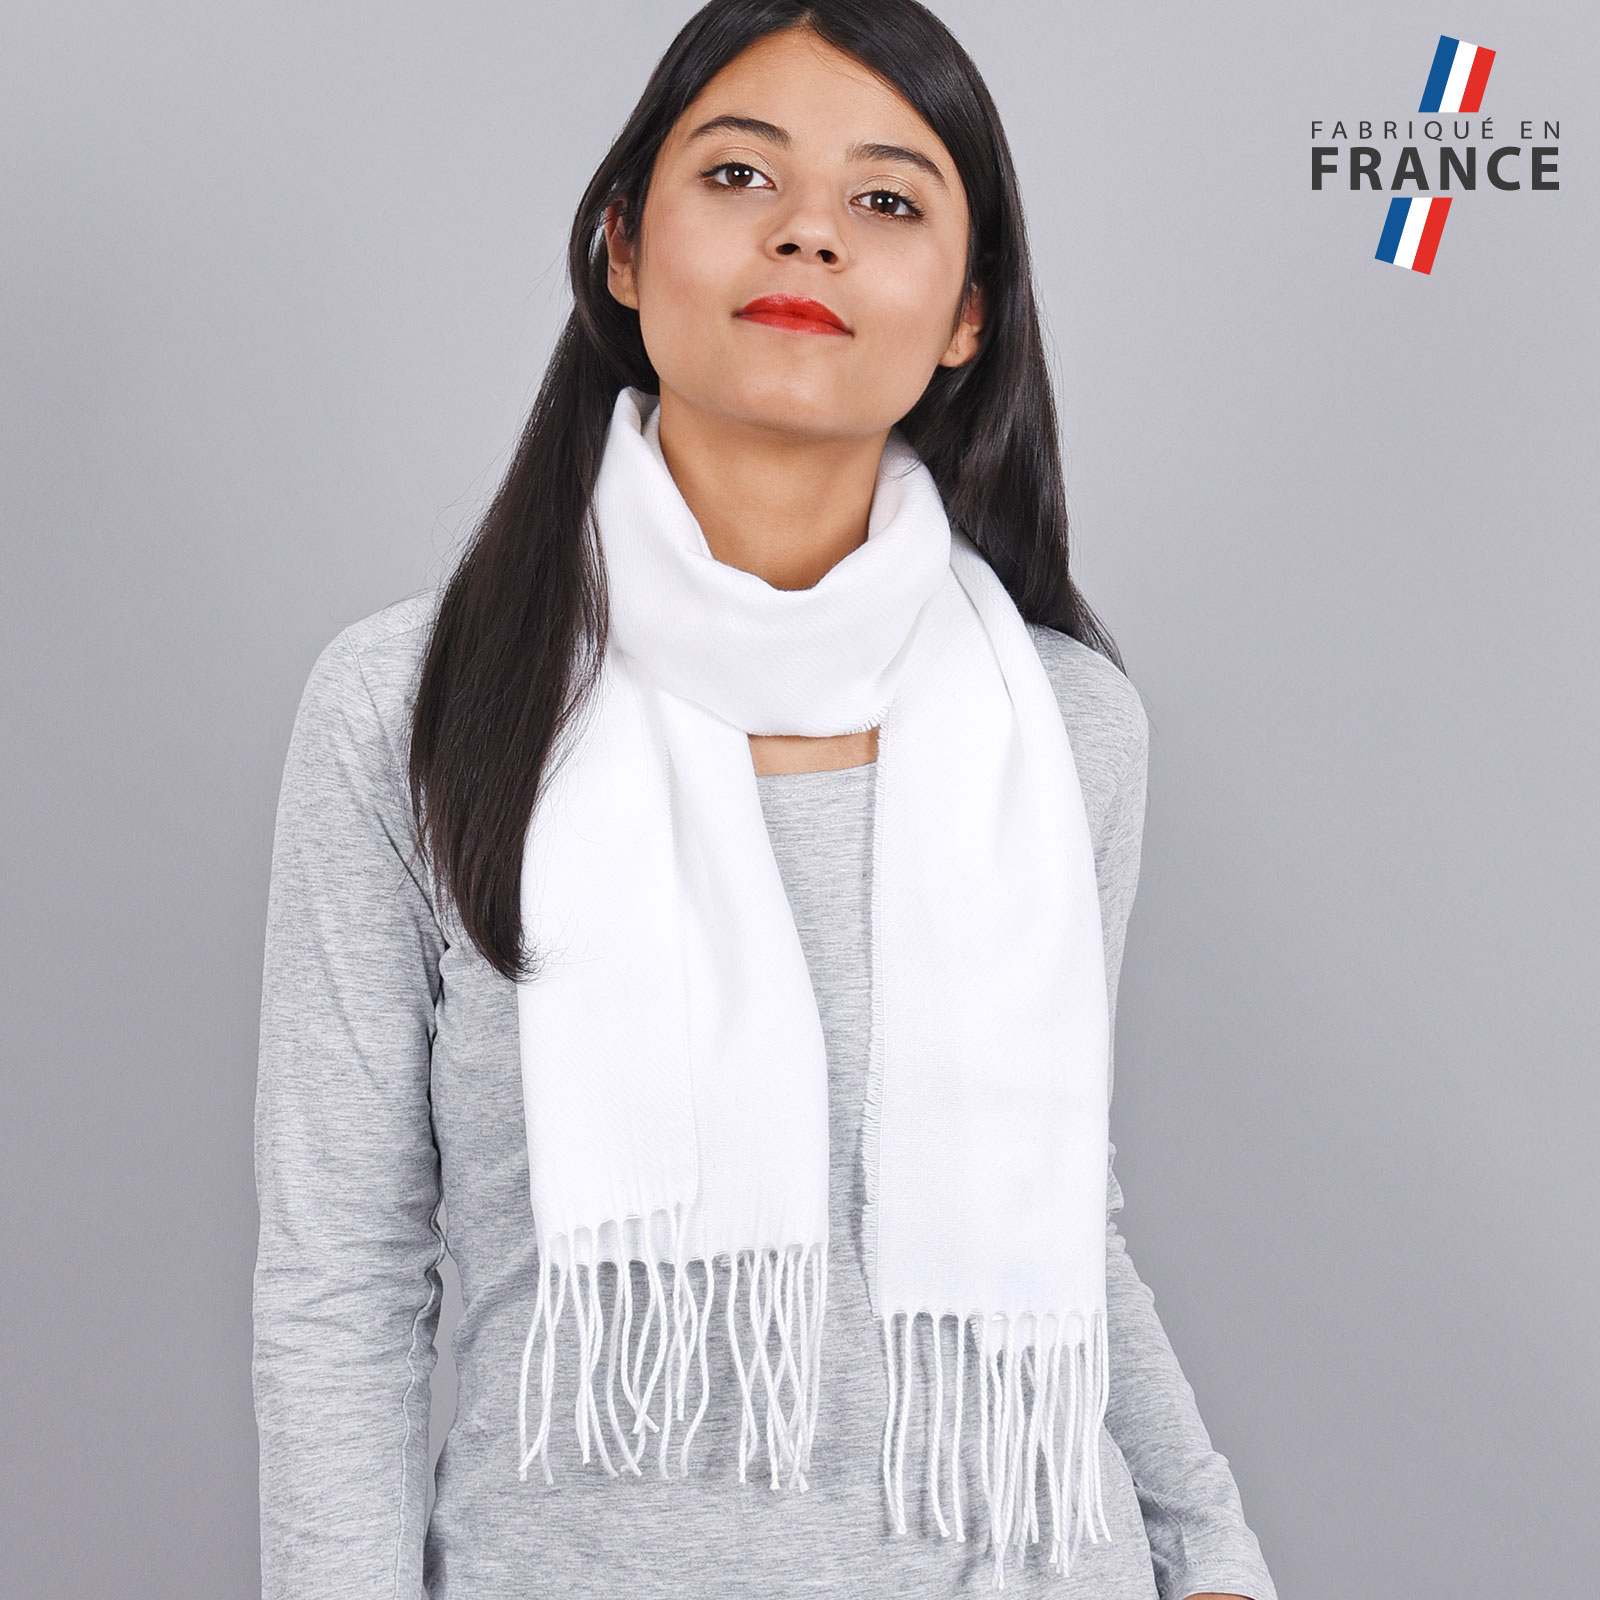 AT-03432-VF16-LB_FR-echarpe-franges-blanc-femme-fabrication-francaise